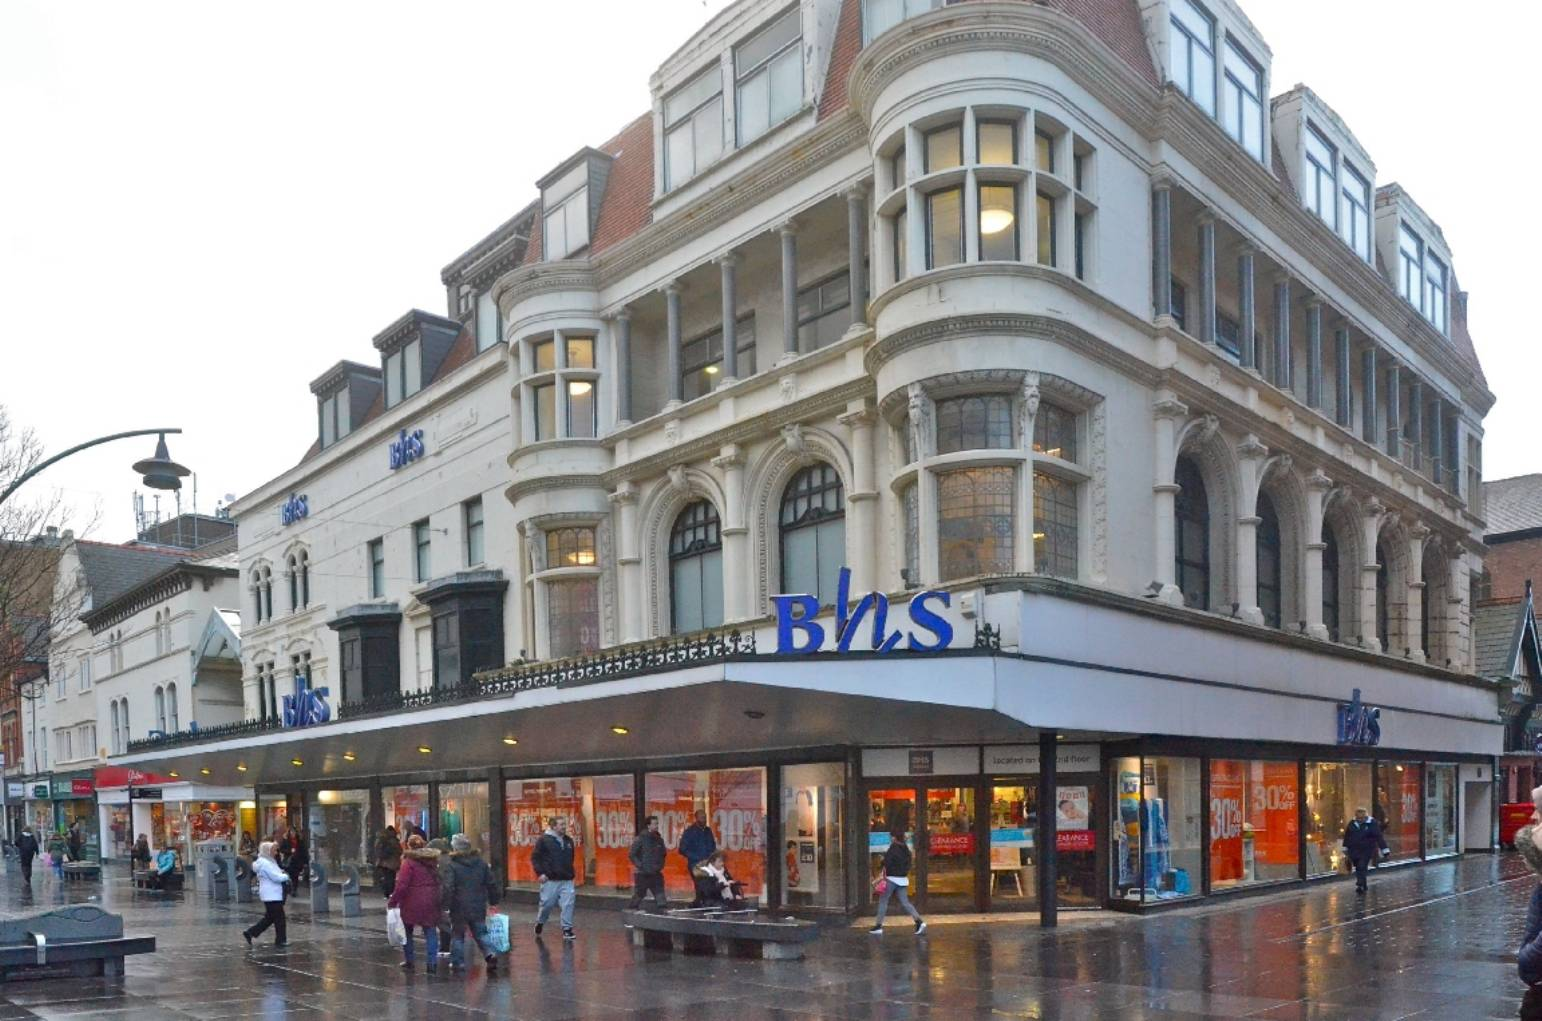 Jobs at risk as BHS store falls into administration